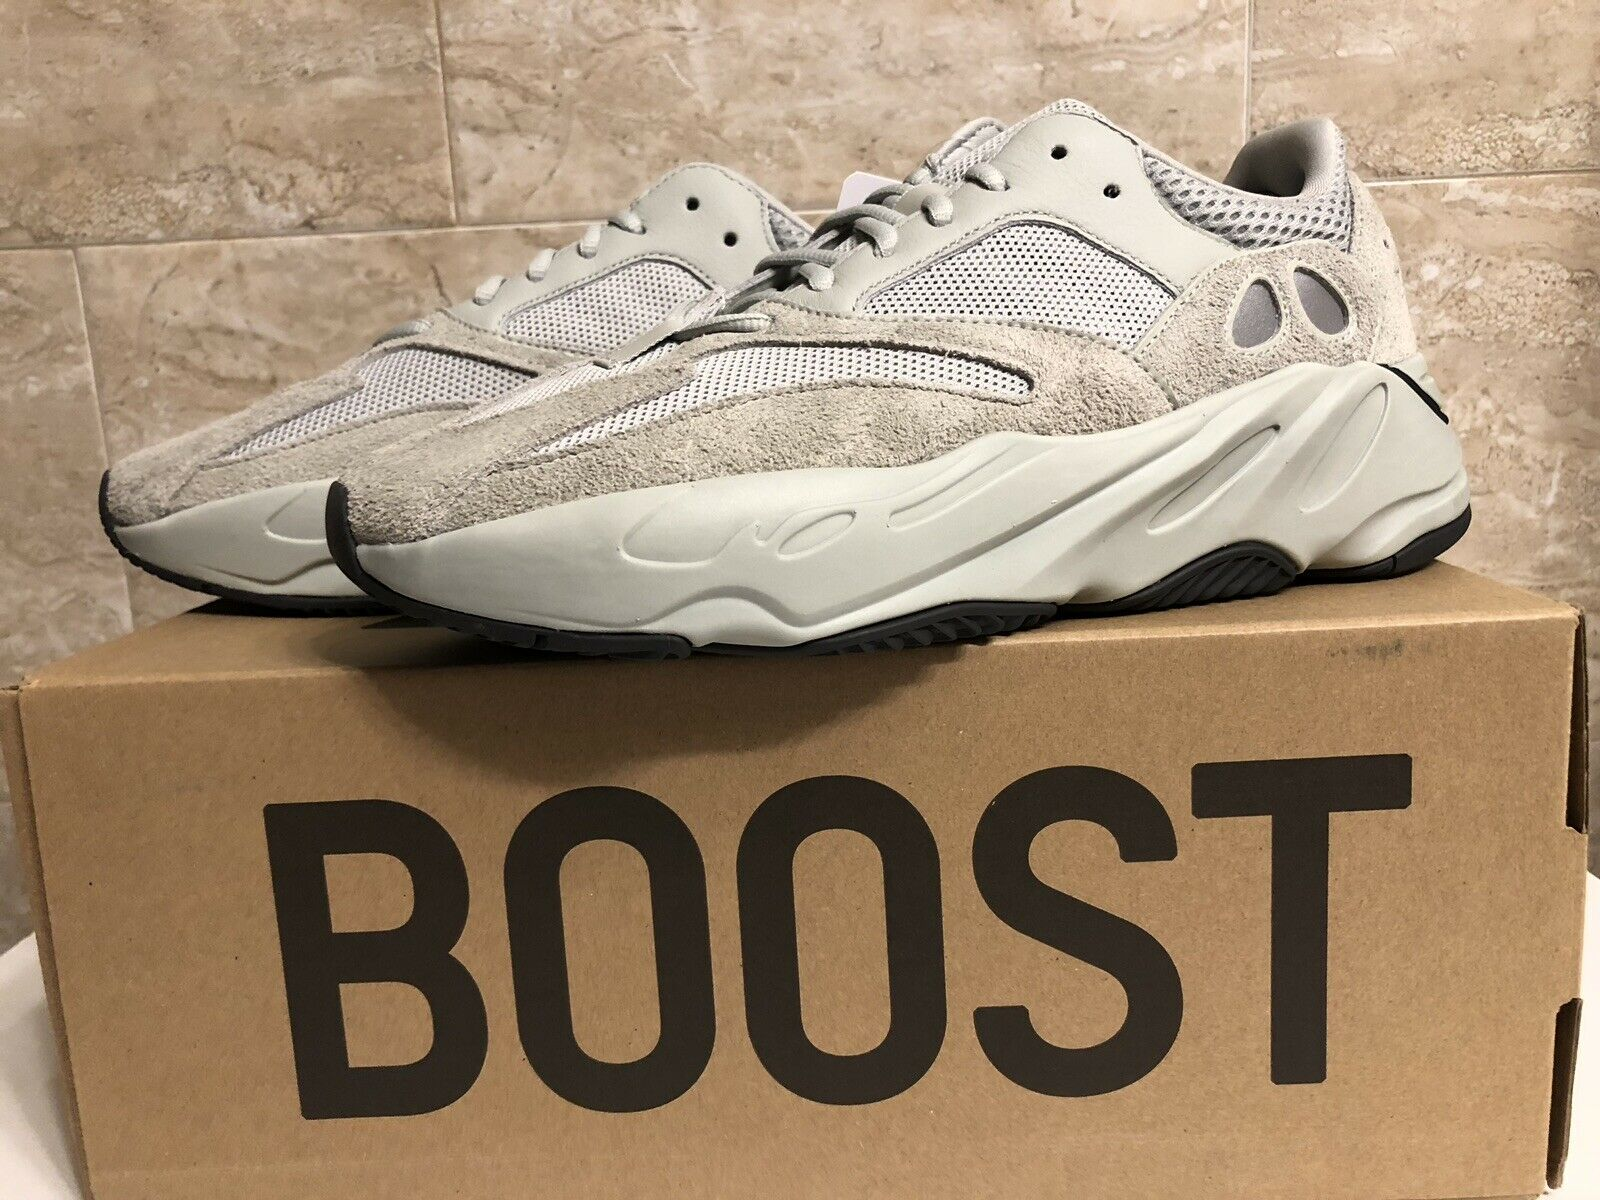 325e427bb Yeezy Boost 700 Salt Size 11 Adidas nxiobi2631-Athletic Shoes ...